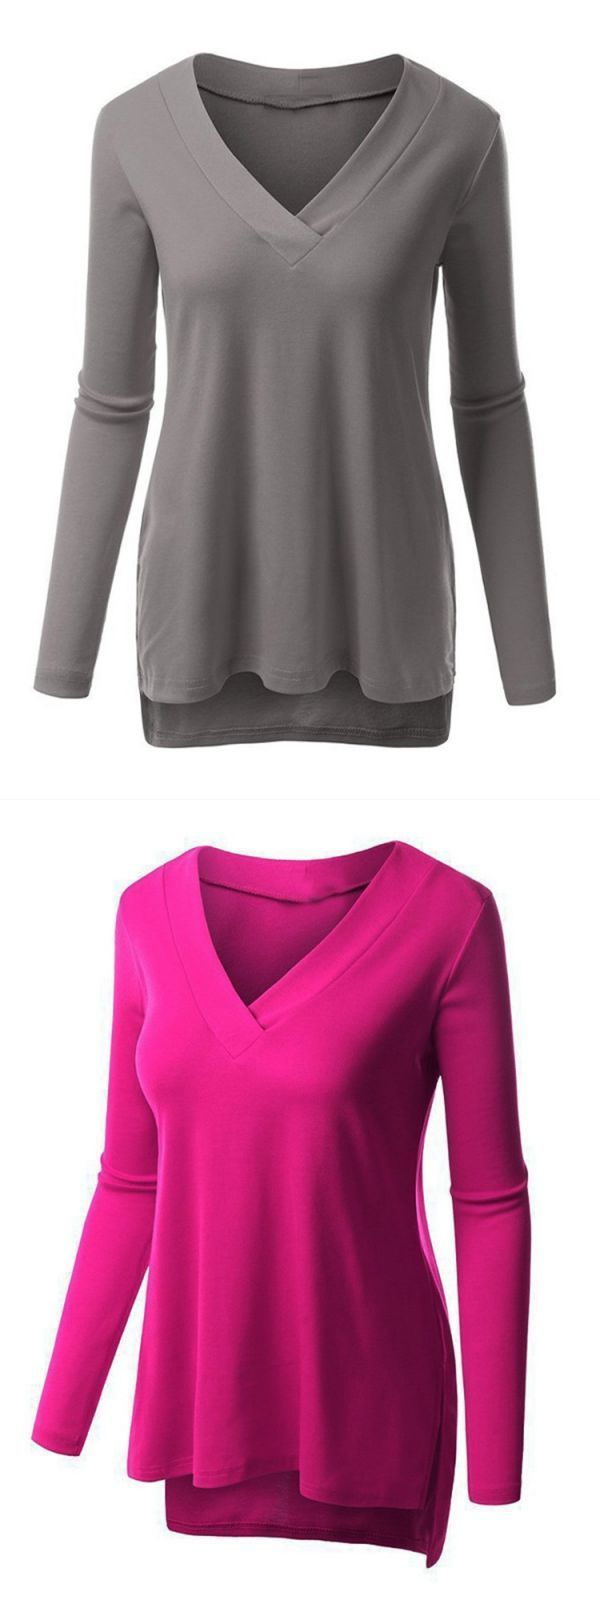 Women Long Sleeve Solid Color Casual V Neck Side Split T Shirt Polo Shirts 8217 S Online Y Whole Lucky 13